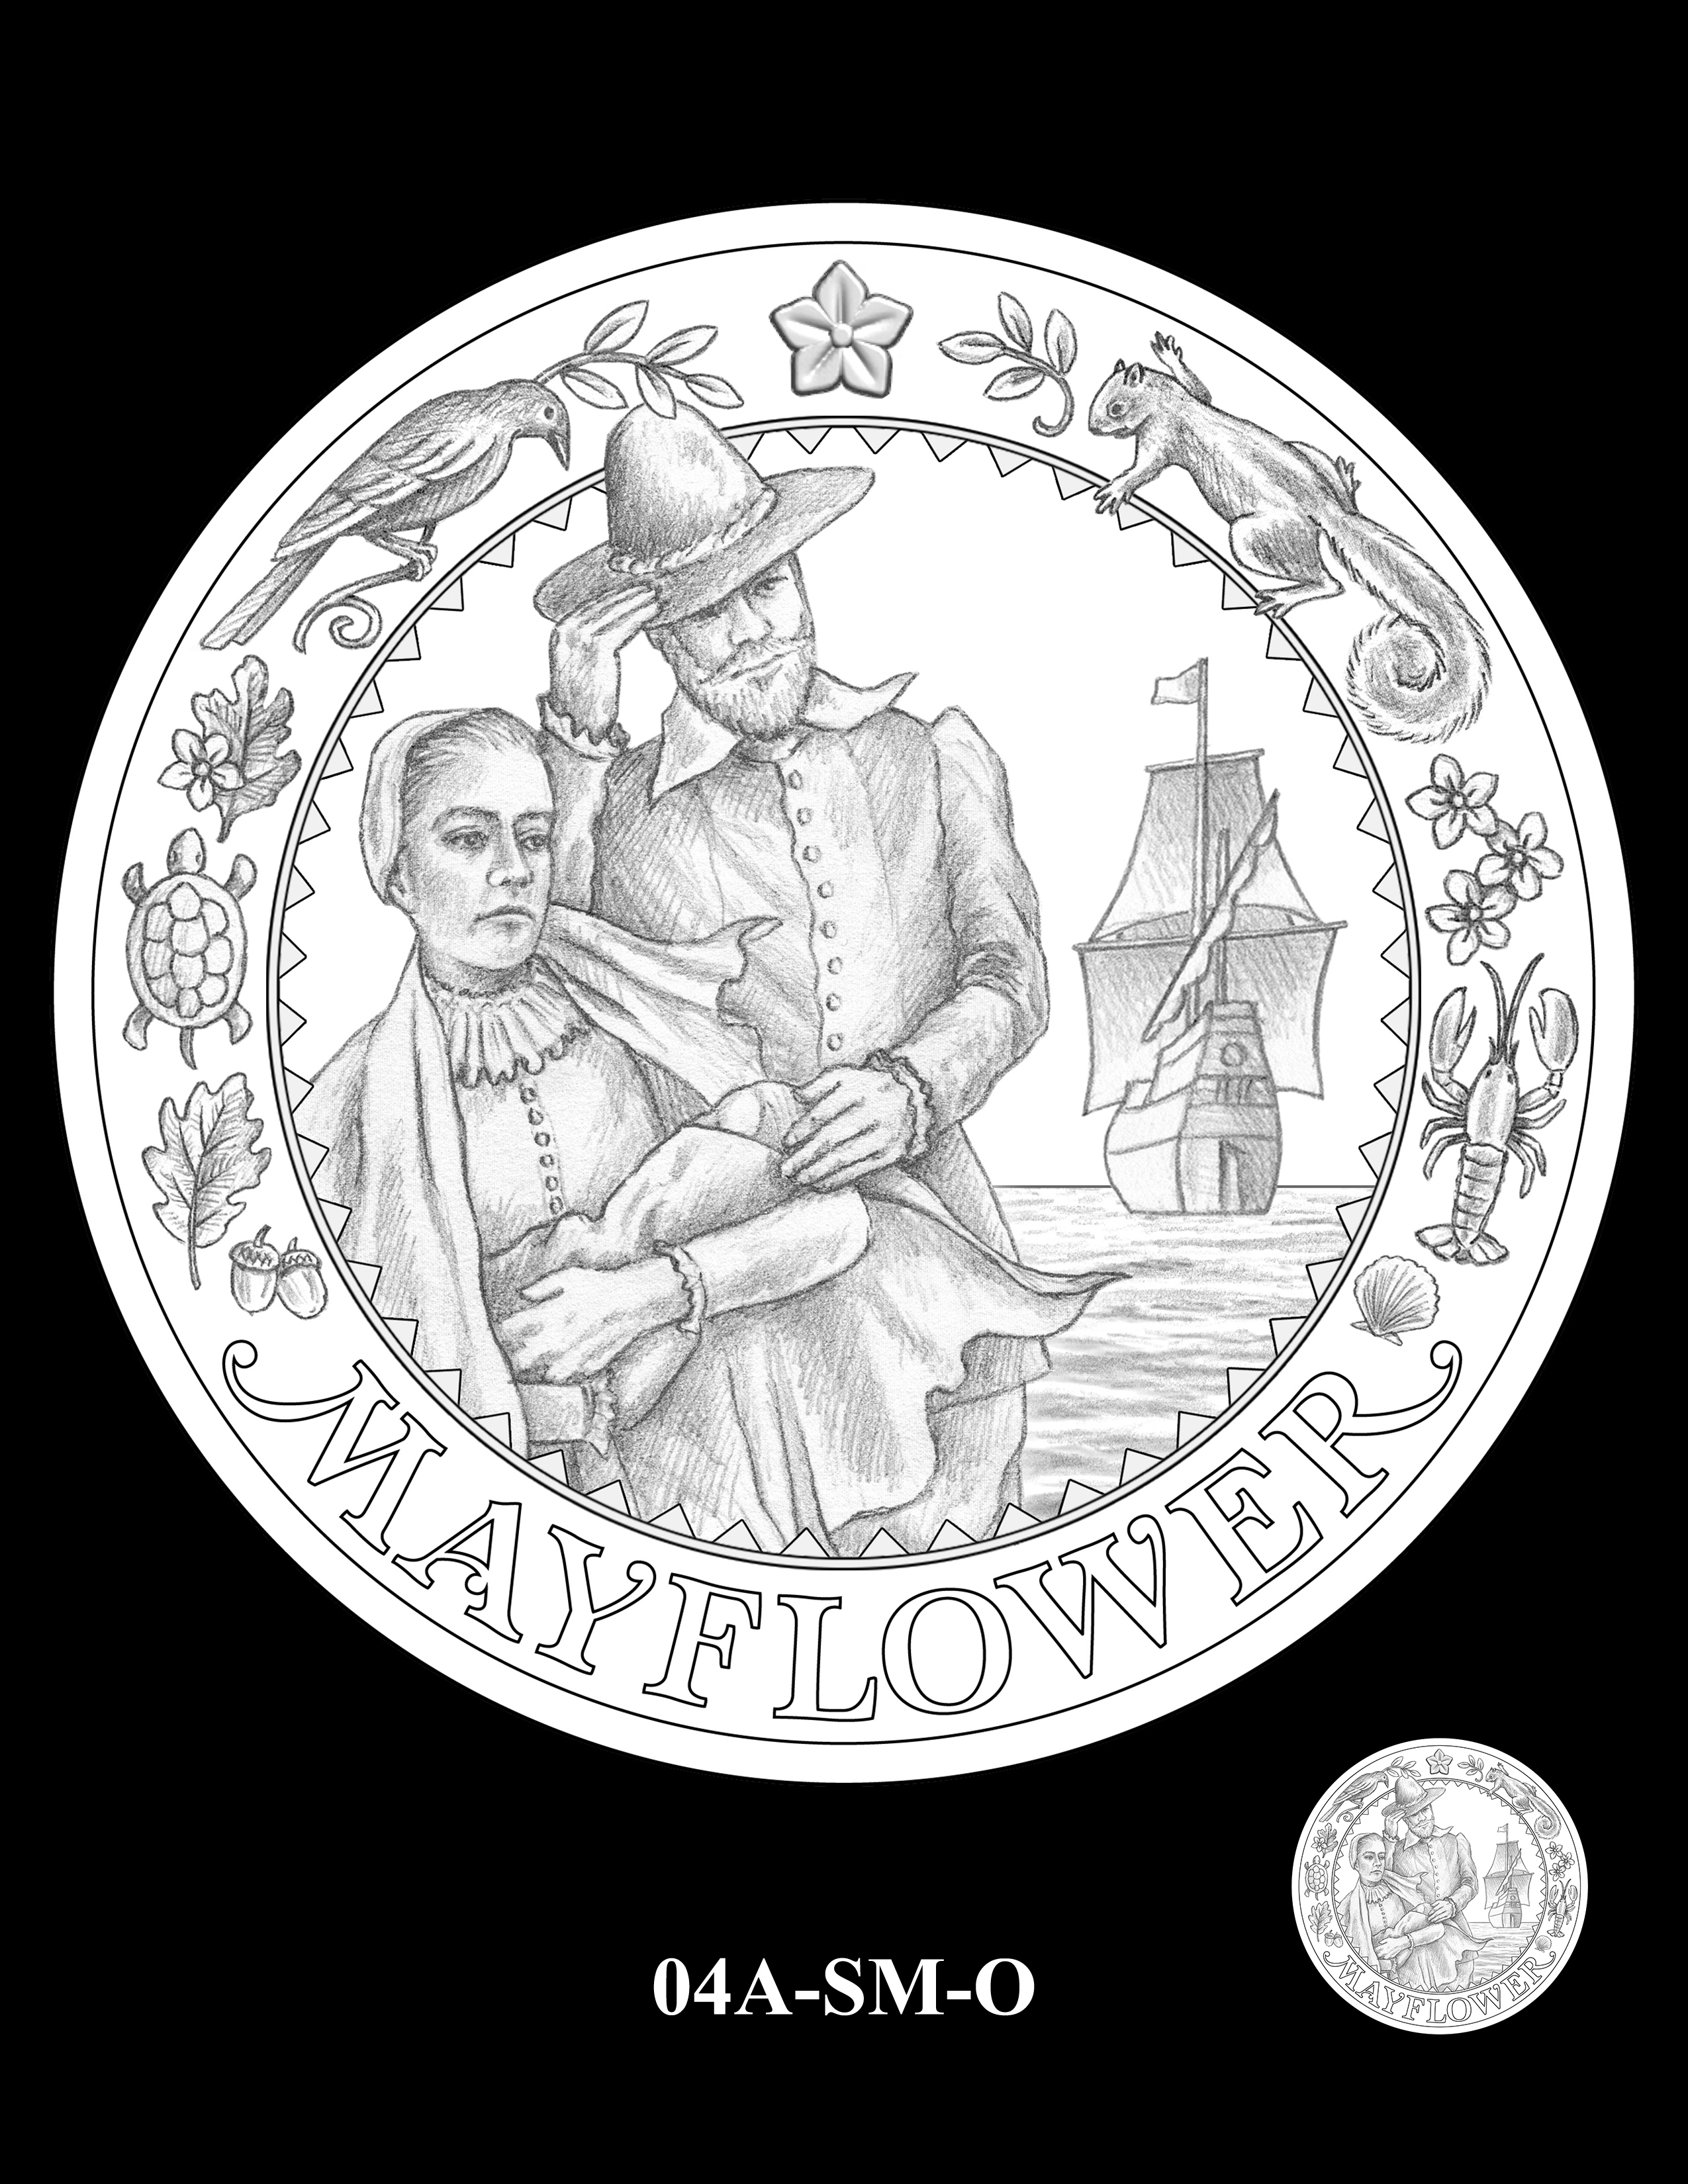 04A-SM-O - 2020 Mayflower 400th Anniversary 24K Gold Coin & Silver Medal Program